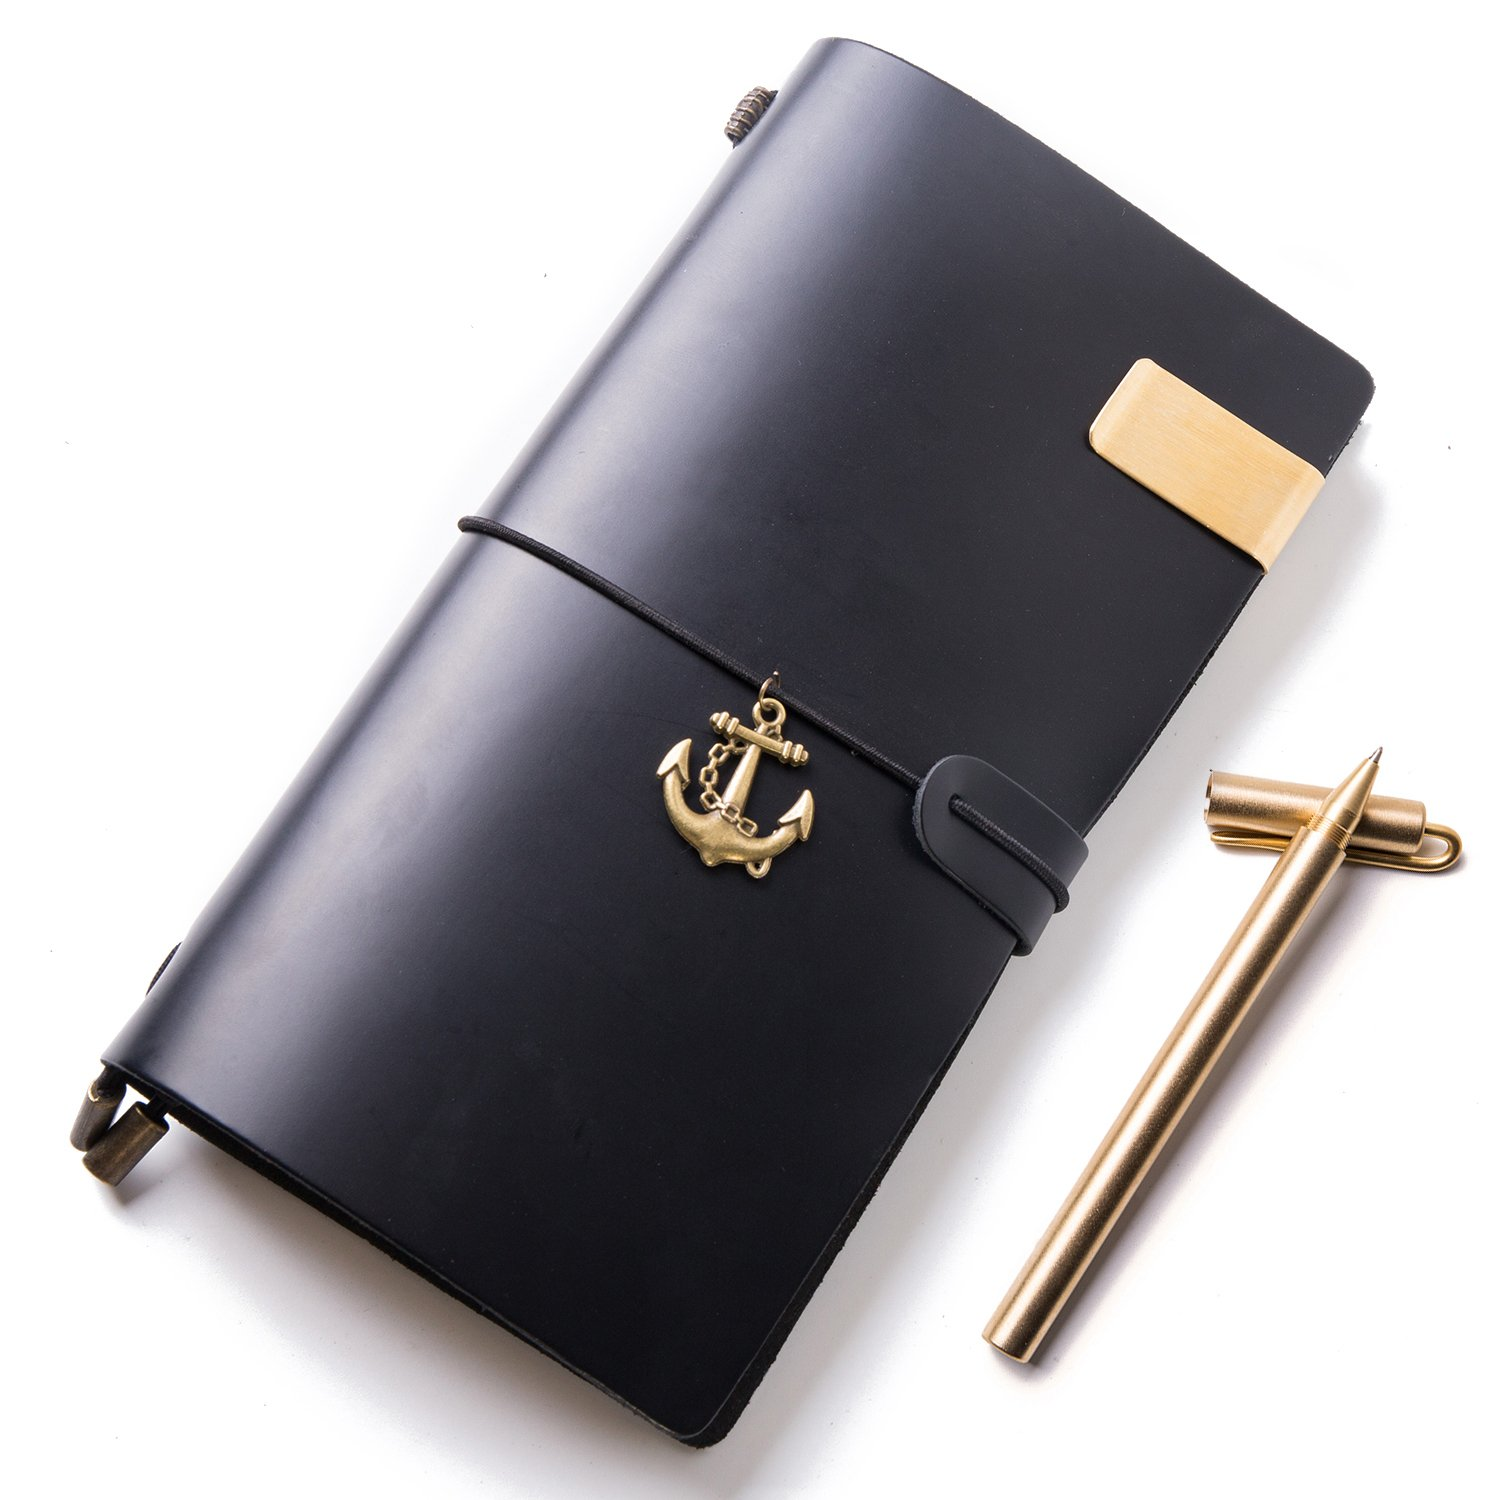 Leather Notebook, Travelers Journal, Leather Notebook, Antique Soft Leather,8.7W × 4.9L Inches 8.7W × 4.9L Inches IPBEN